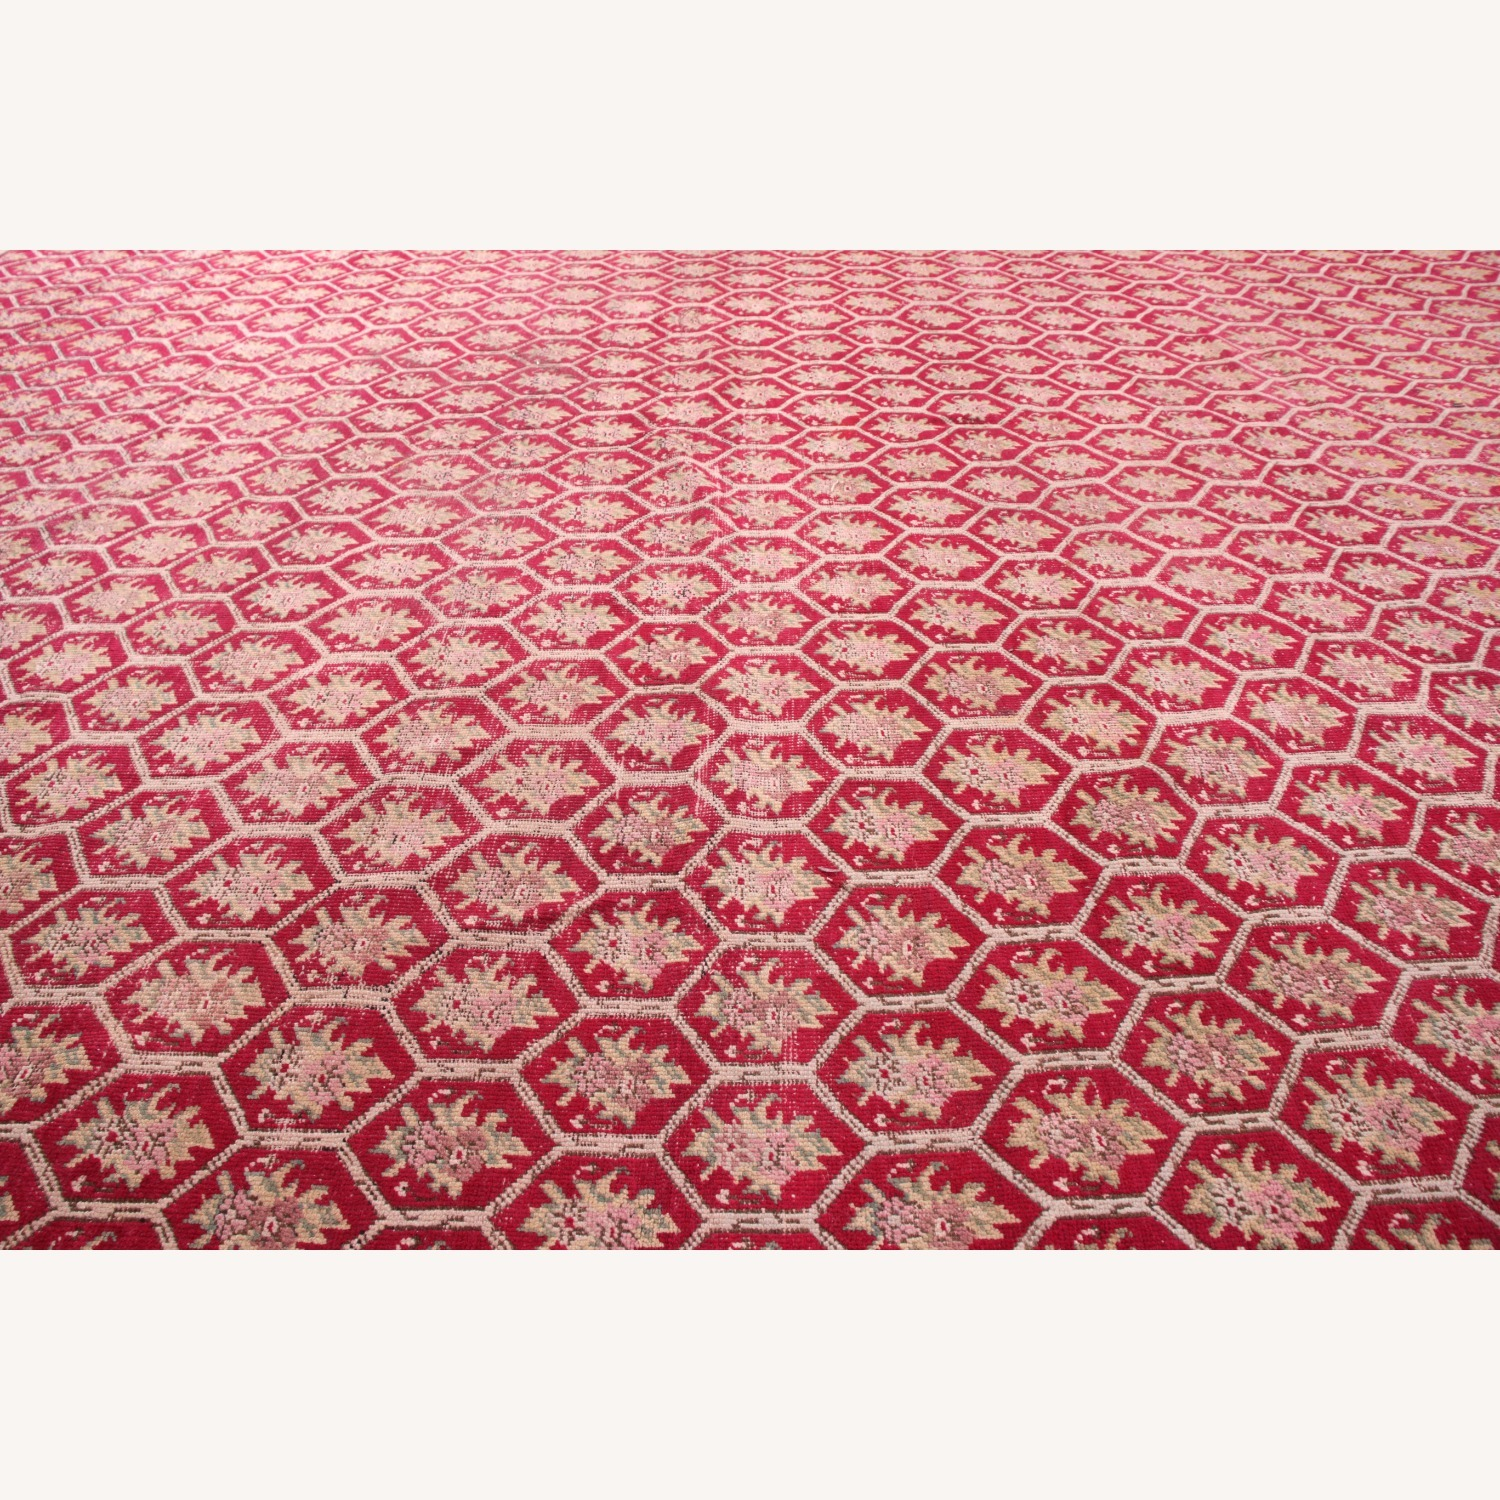 Antique Red and Pink Floral Rug - image-5